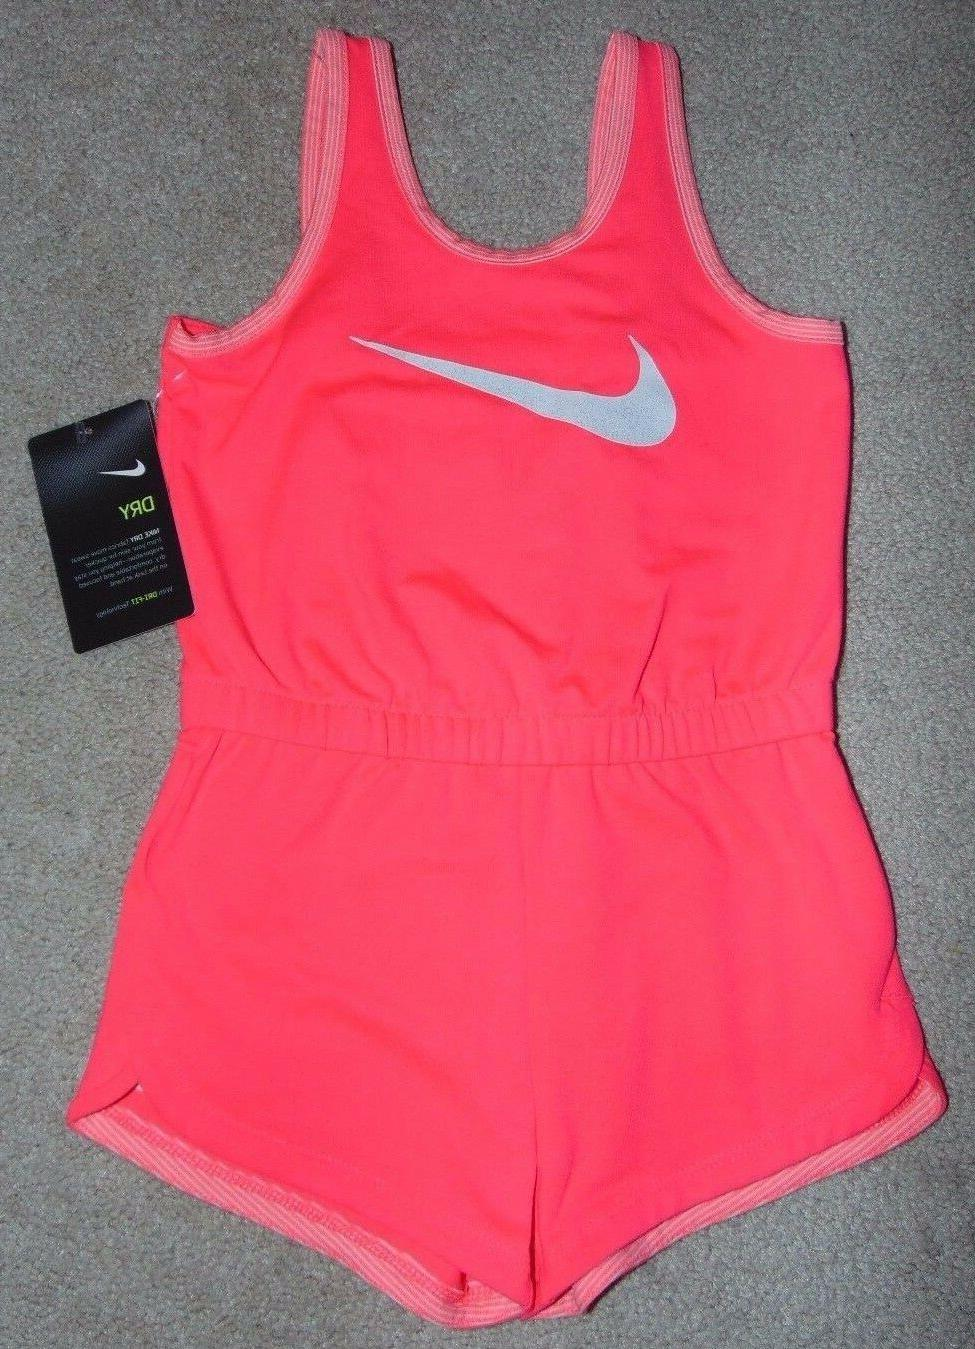 nwt girls dri fit neon shorts outfit